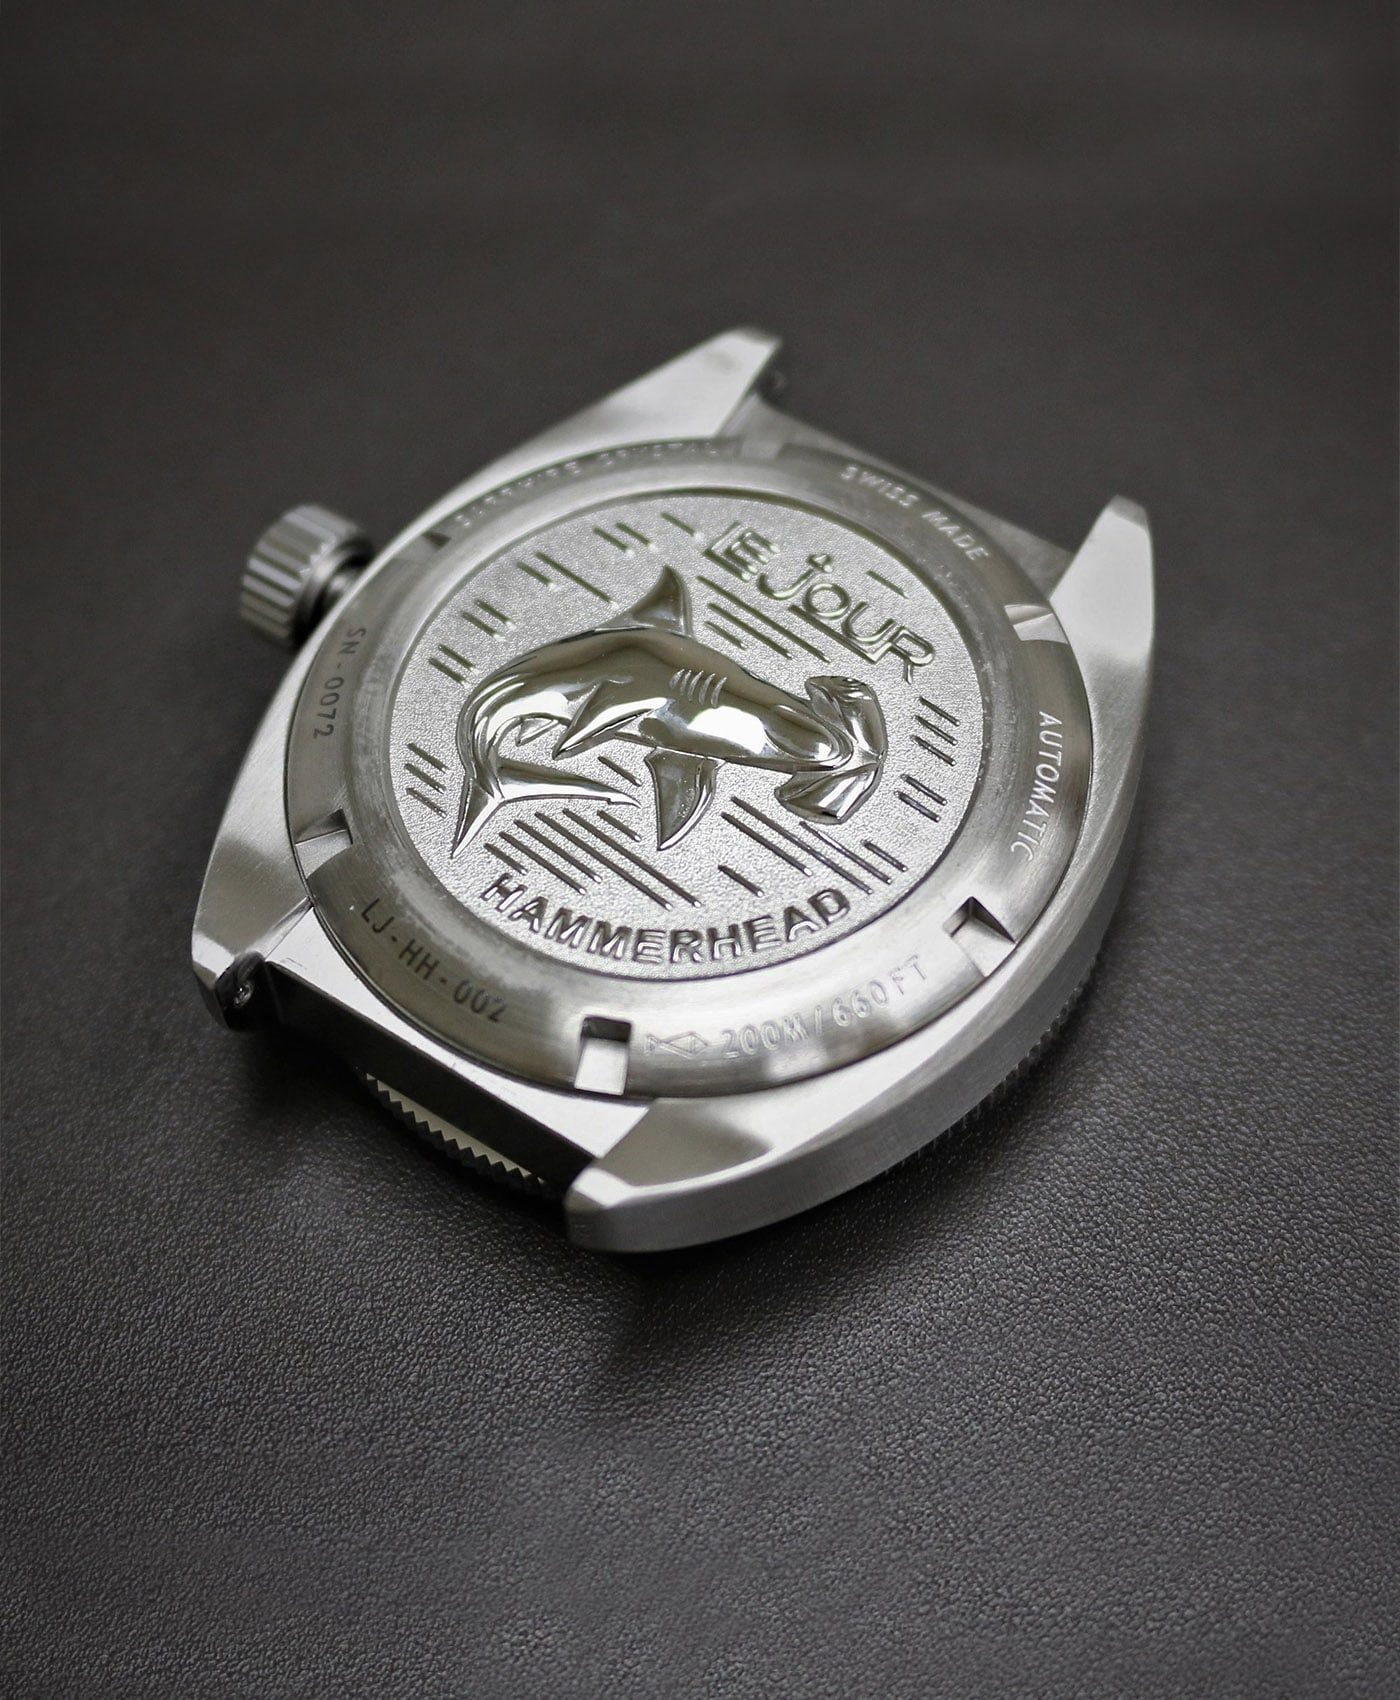 LeJour Hammerhead dive watch case back